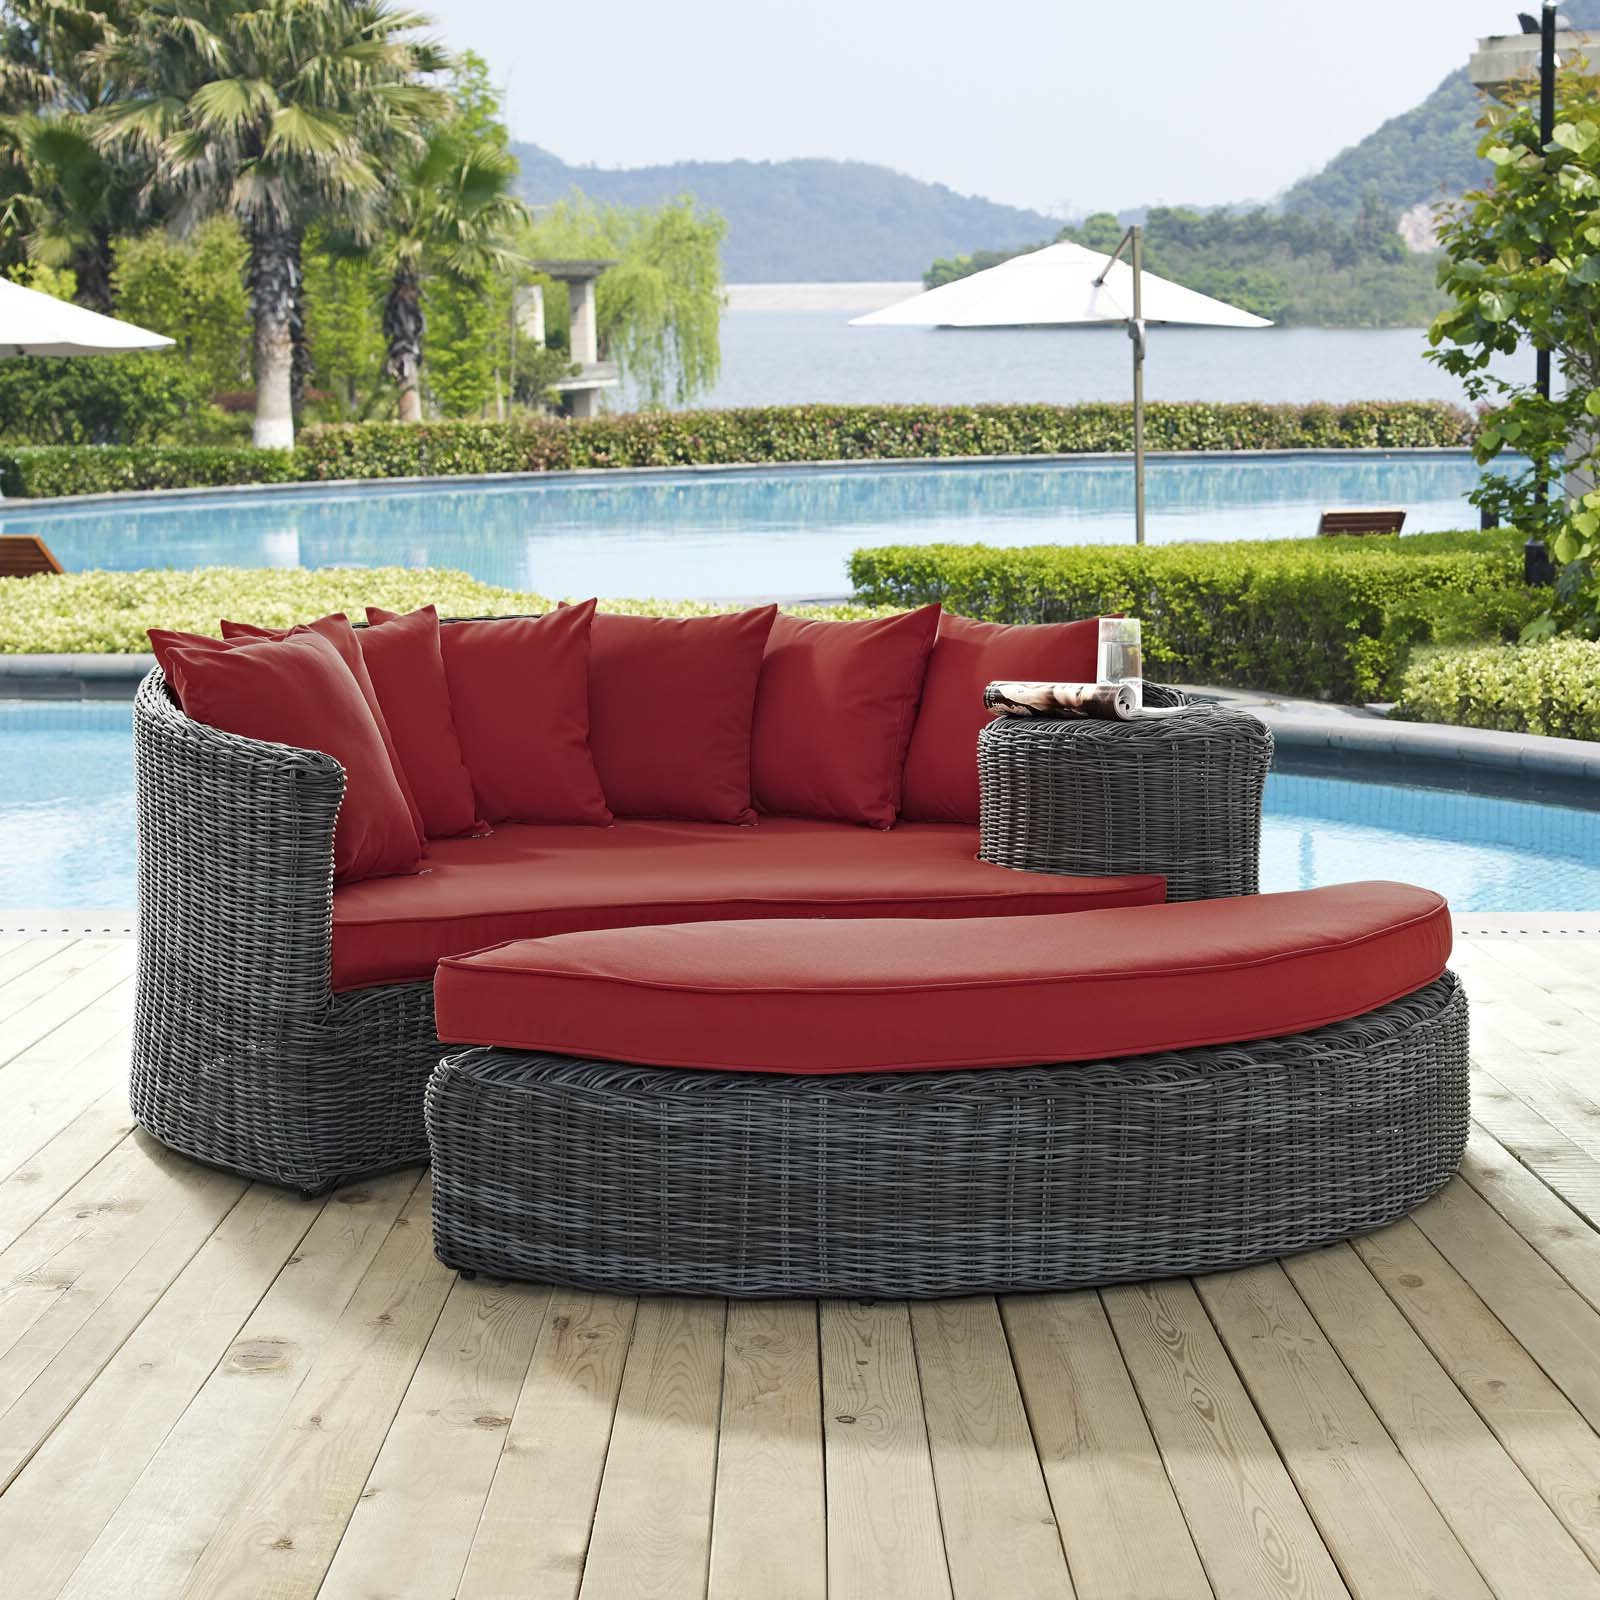 2019 Keiran Patio Daybed With Cushions Intended For Lammers Outdoor Wicker Daybeds With Cushions (View 1 of 20)